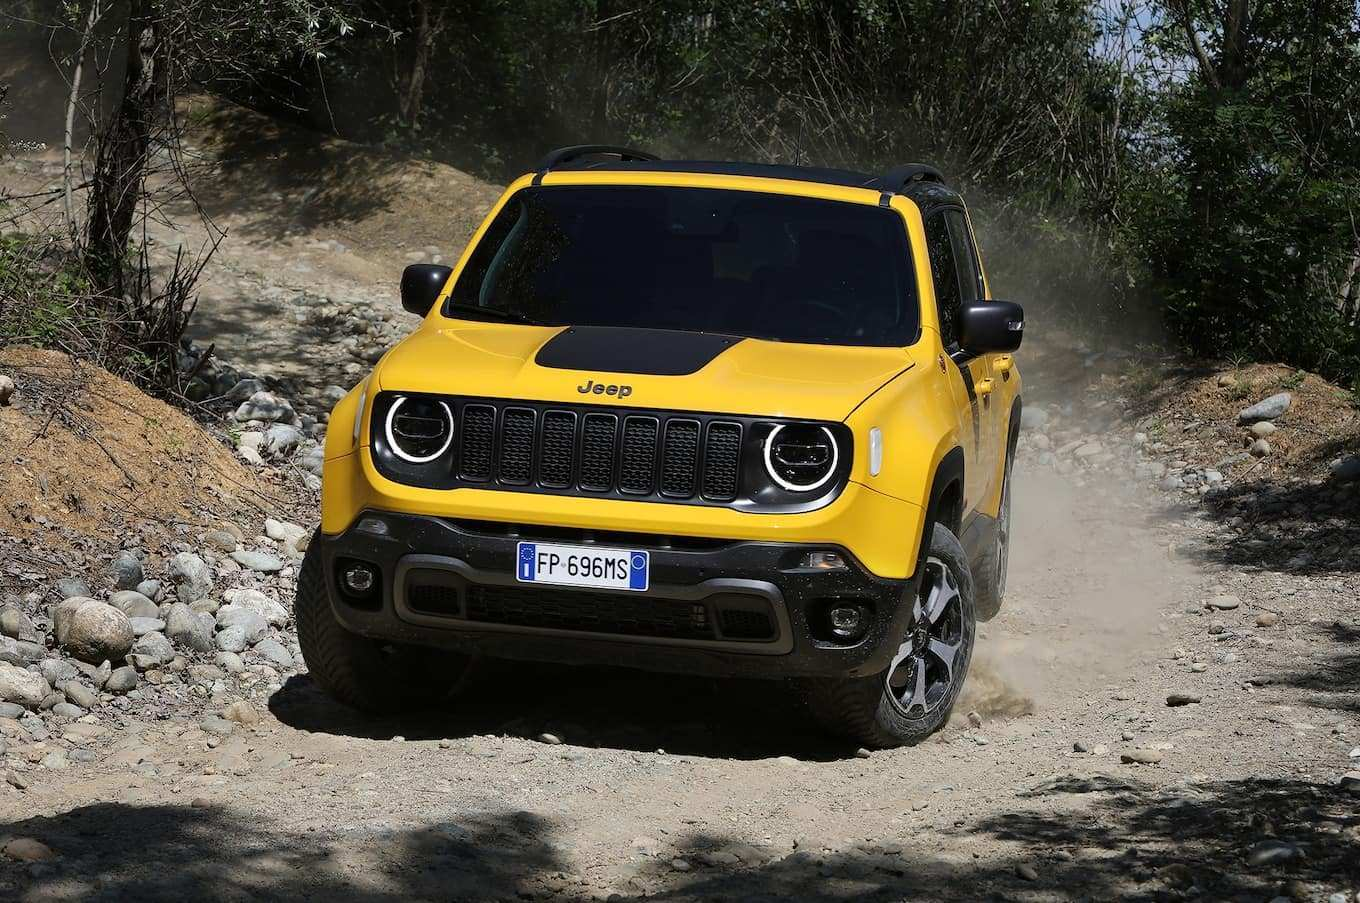 53 All New Jeep Renegade 2020 Performance and New Engine for Jeep Renegade 2020